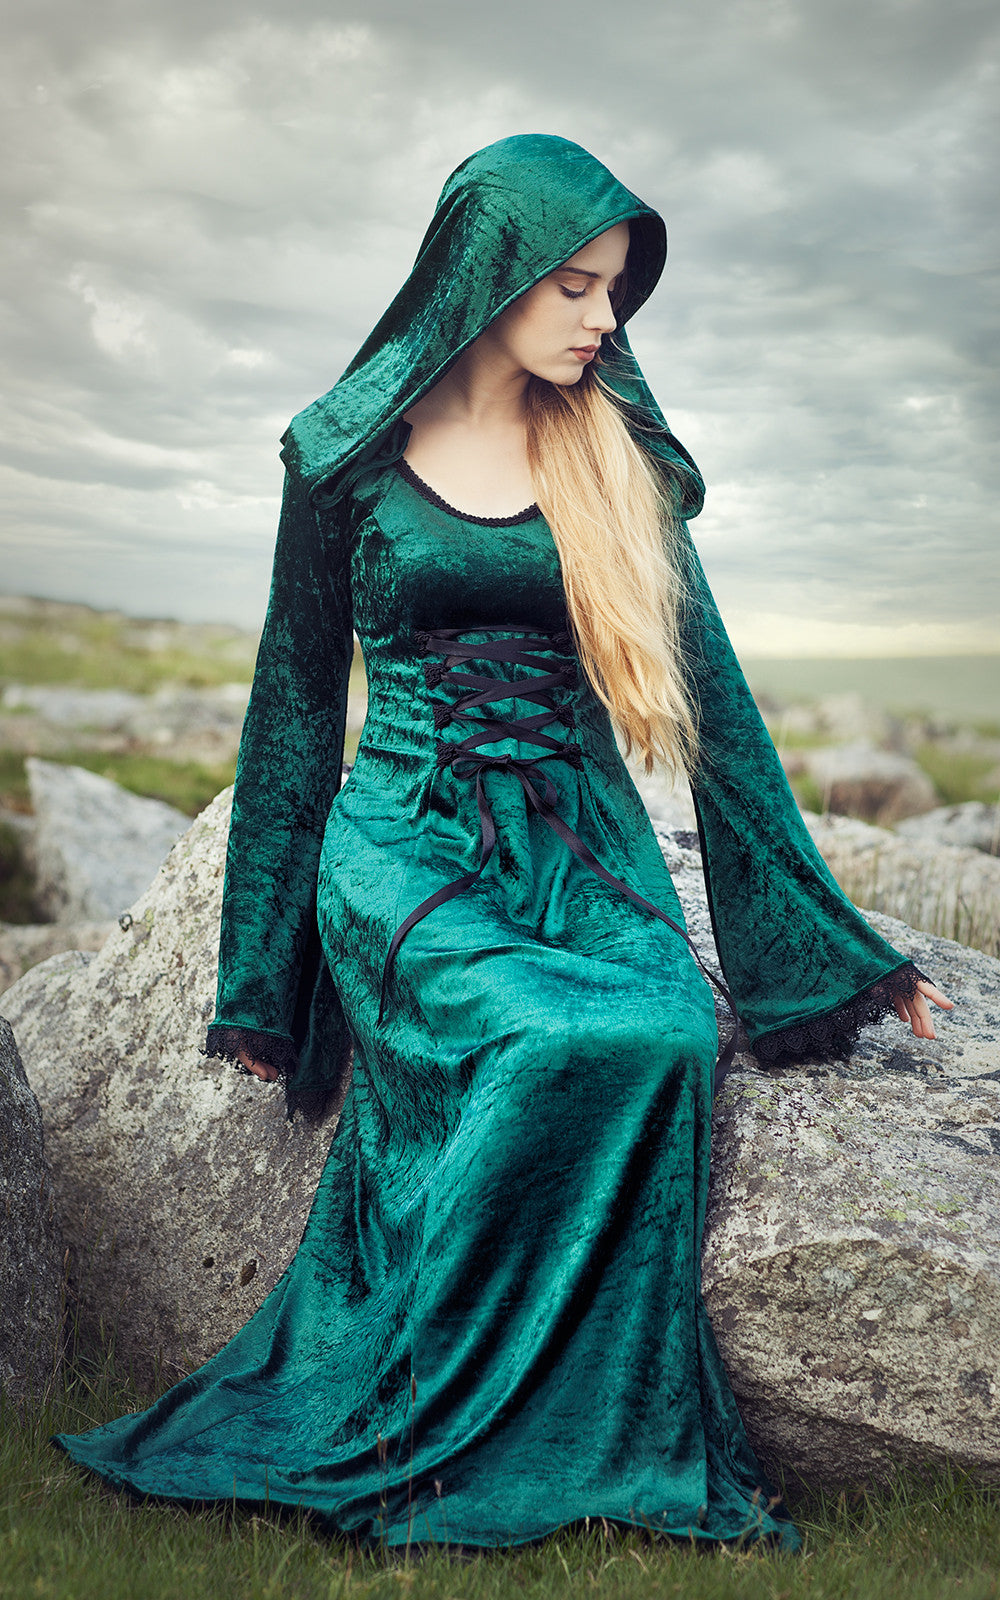 502 - Hooded Gown – The Dark Angel